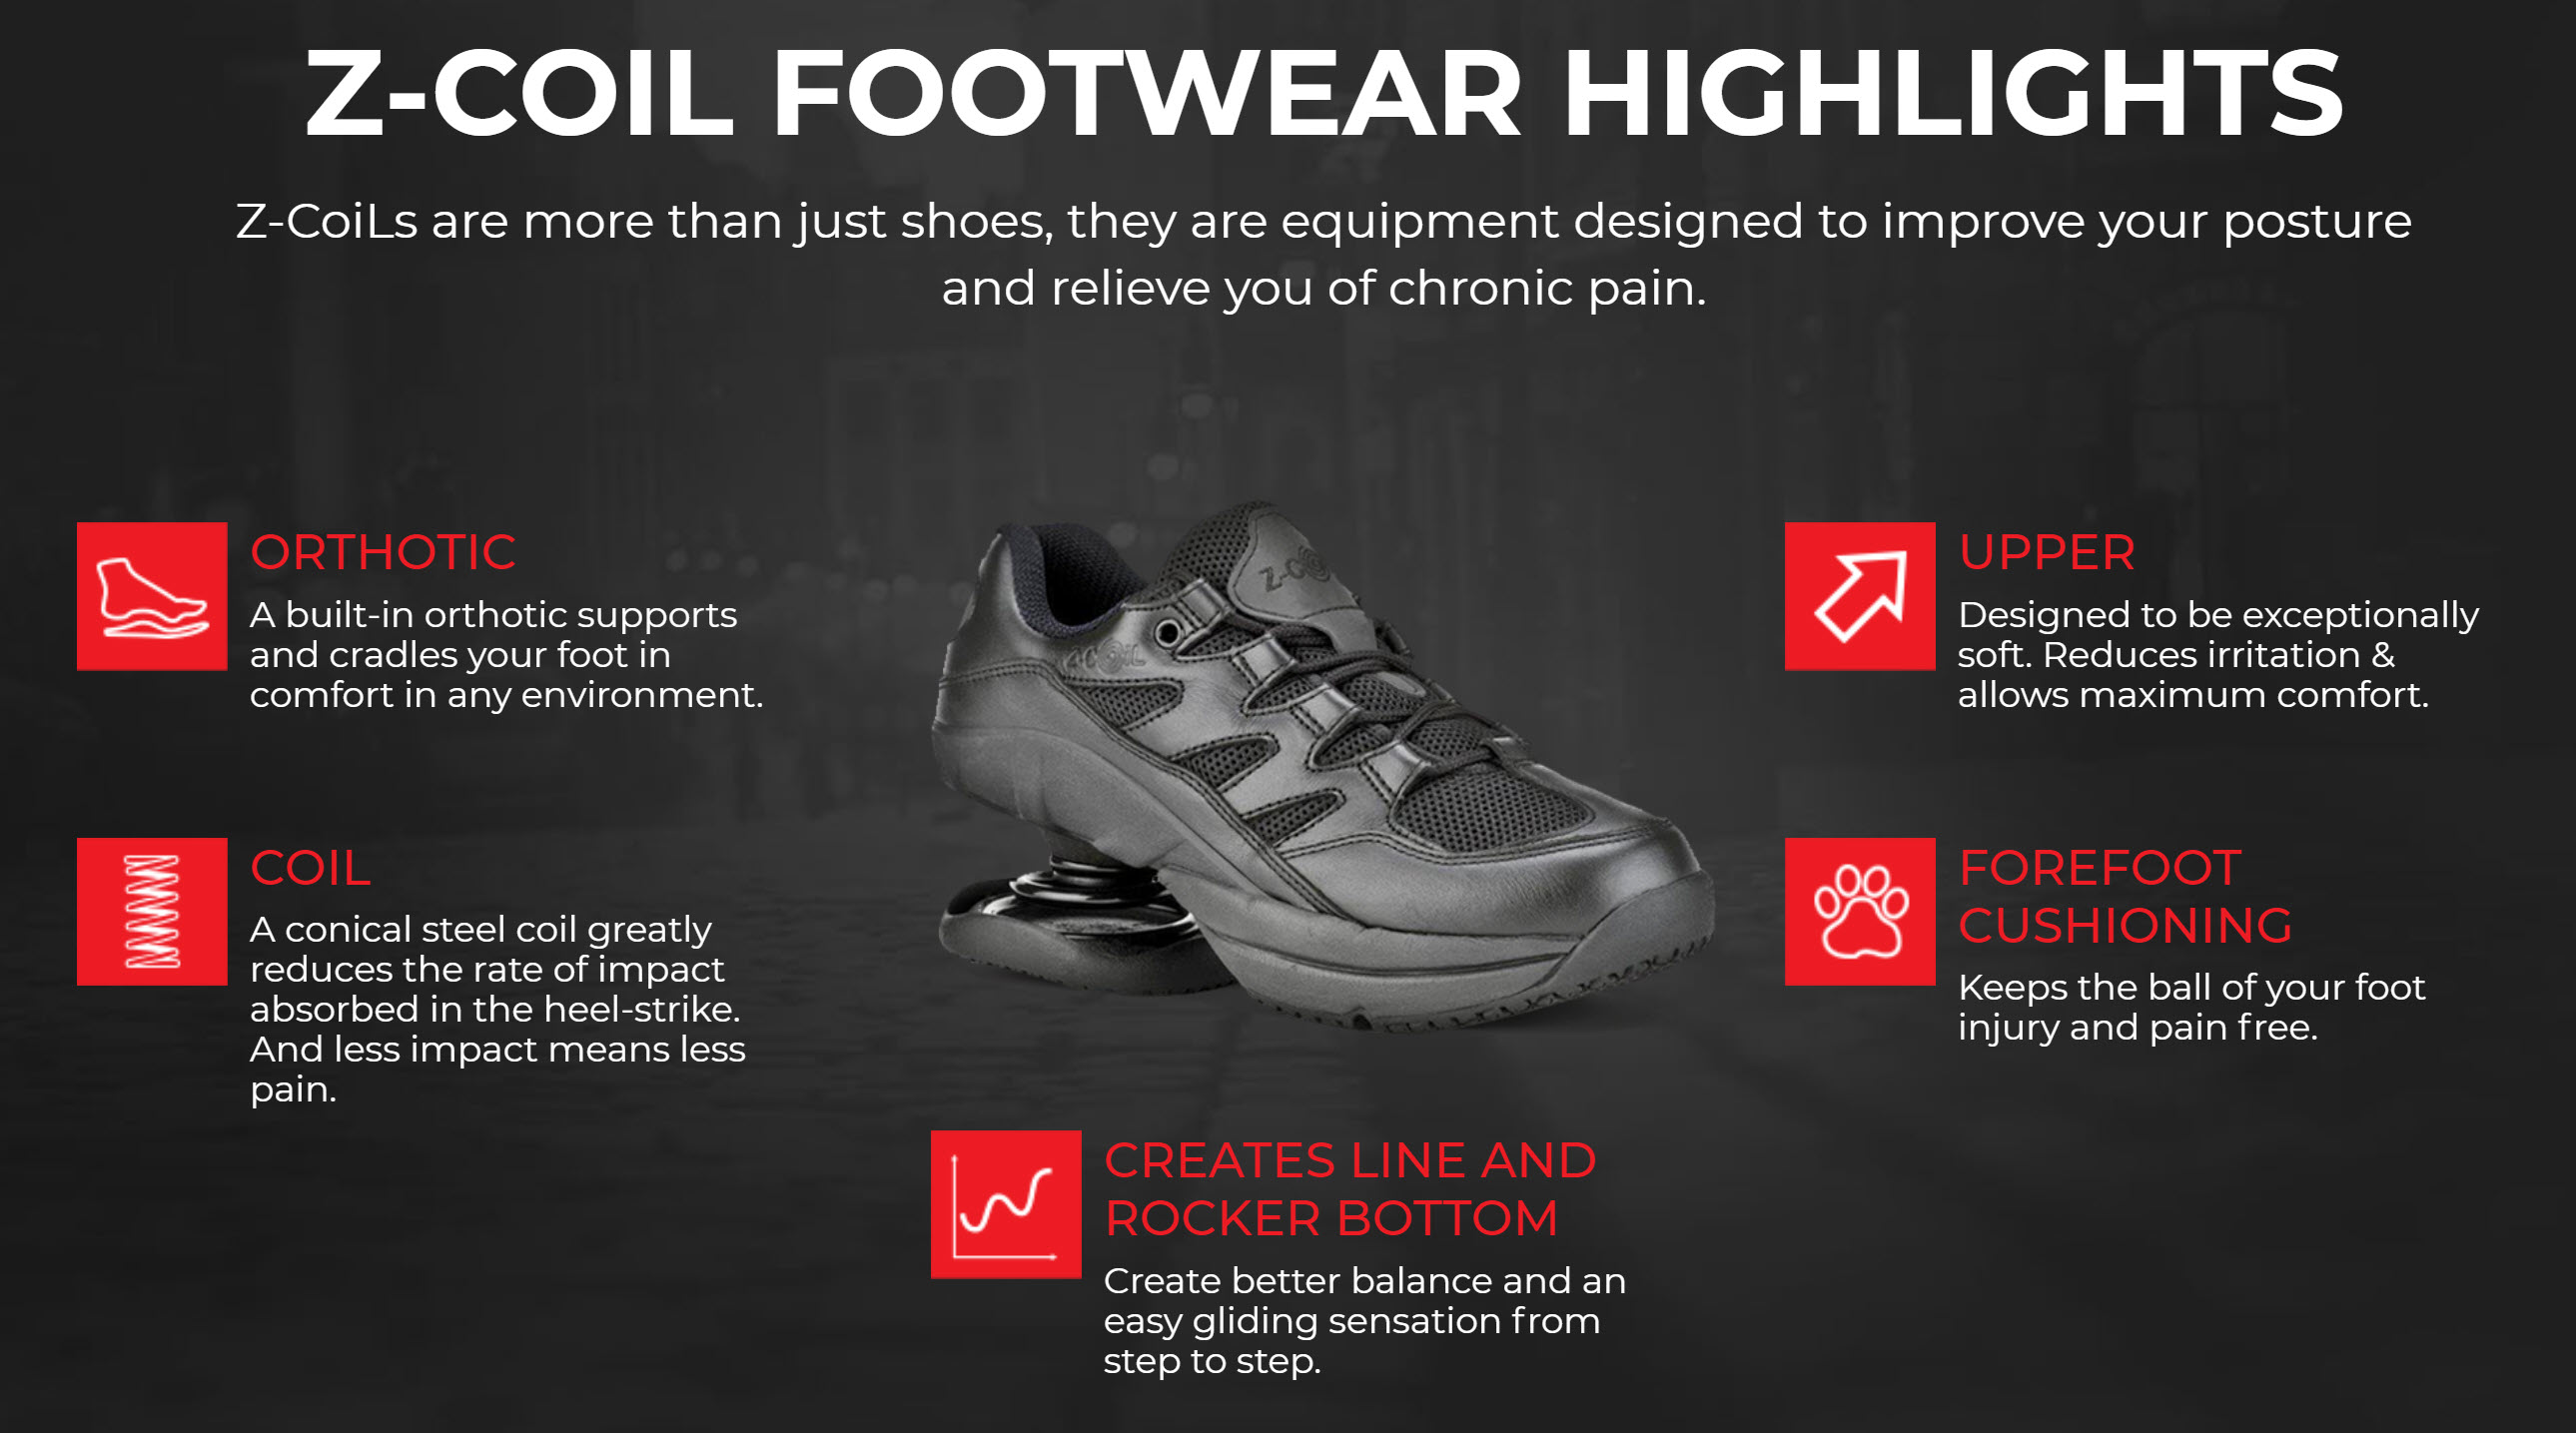 footwear-highlights.jpg